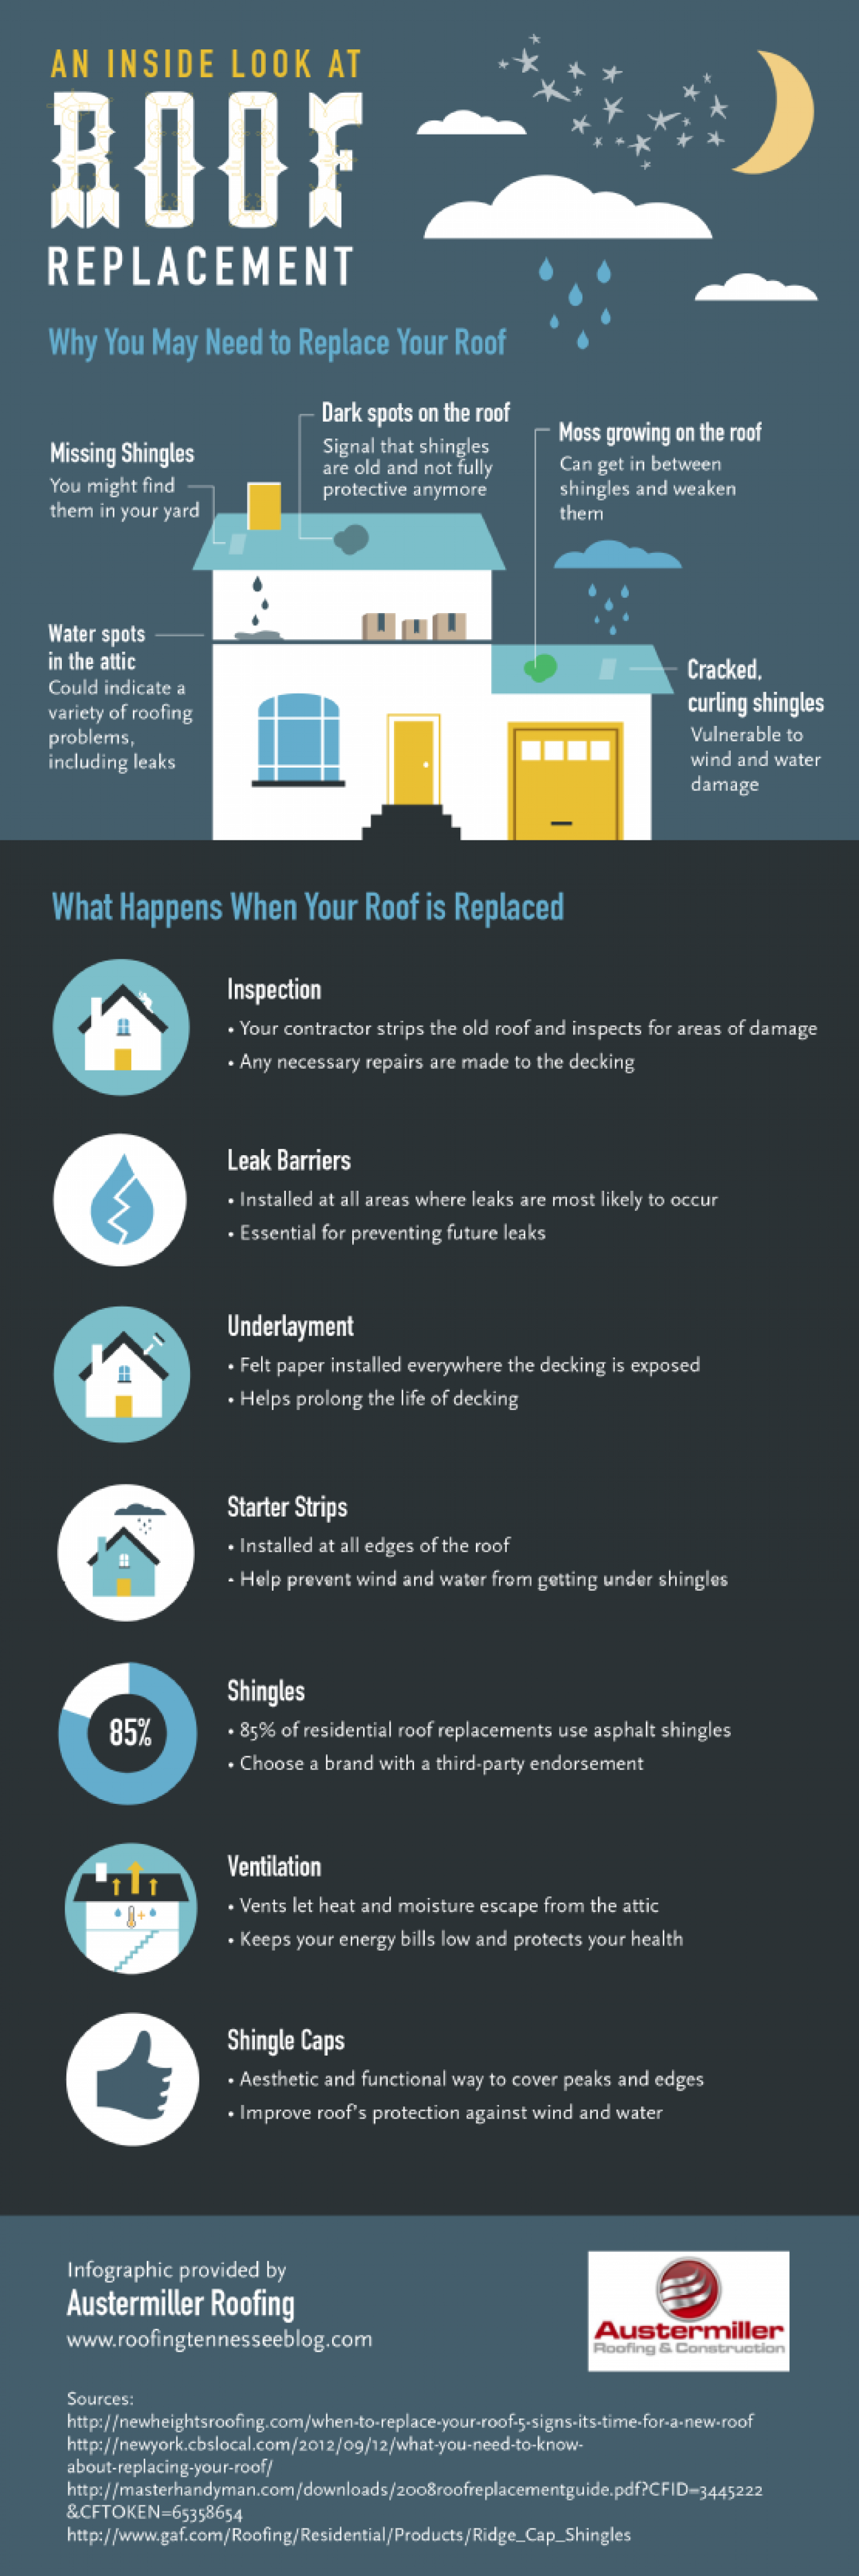 An Inside Look at Roof Replacement  Infographic